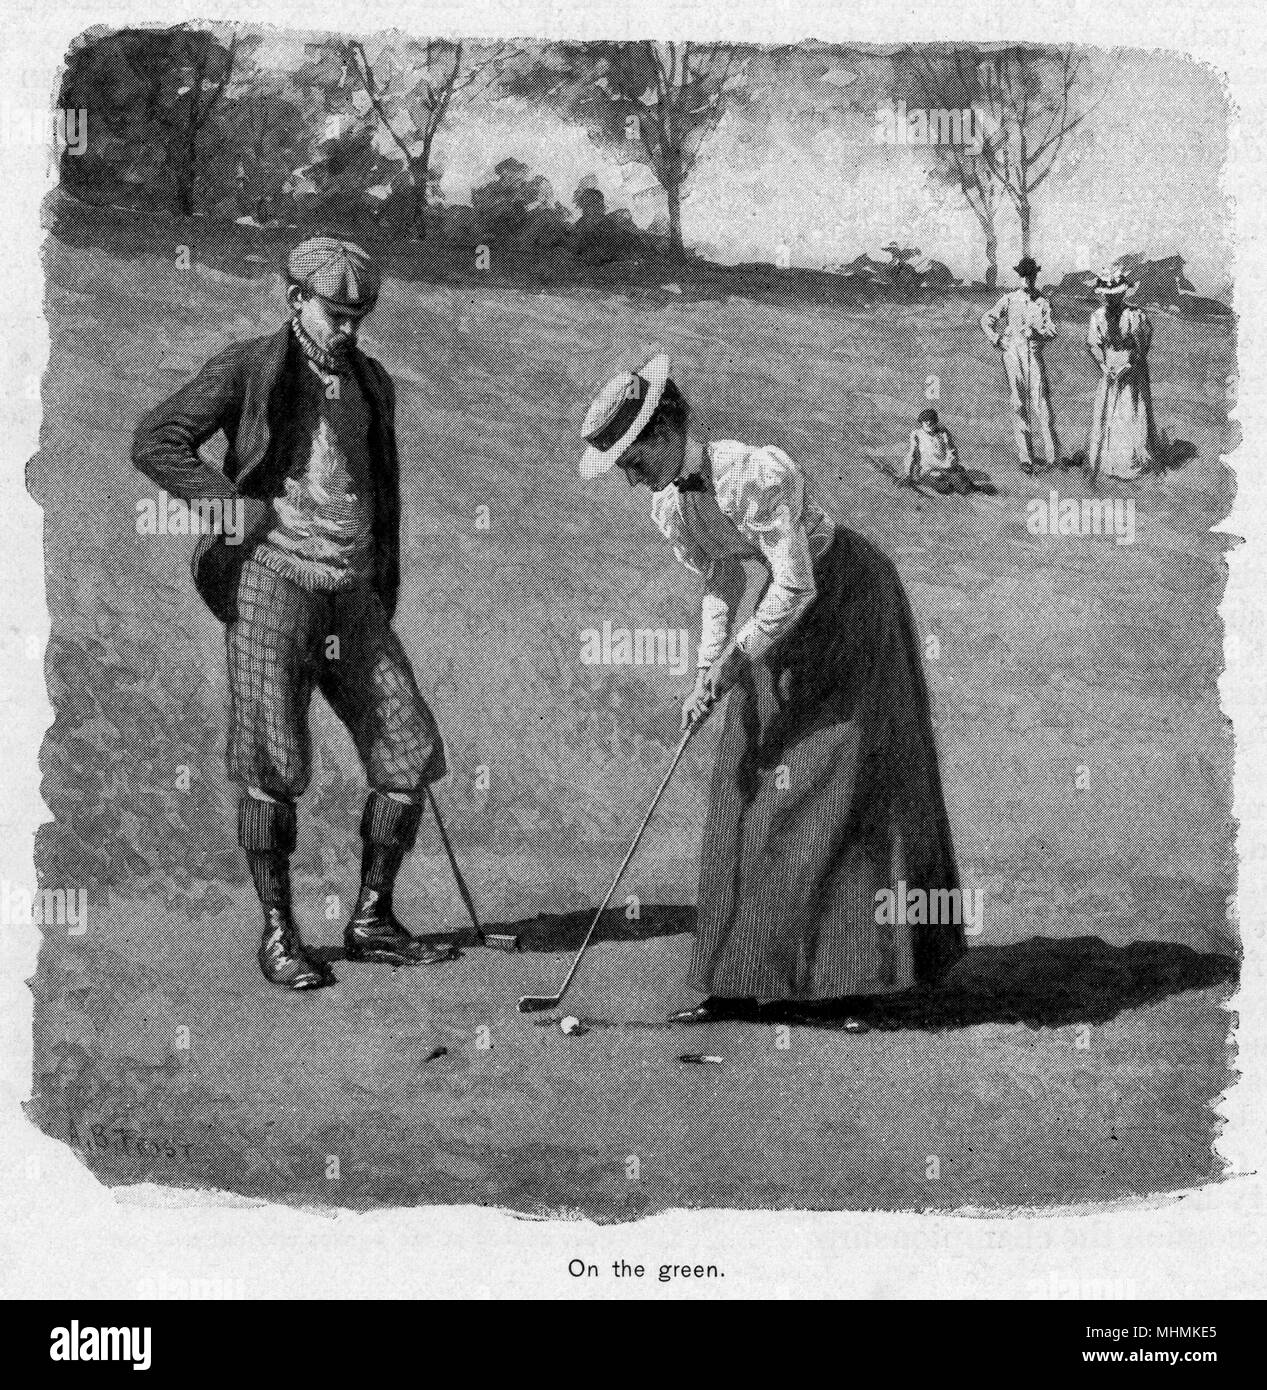 A lady putts out on a green, watched closely by her partner.       Date: 1895 - Stock Image